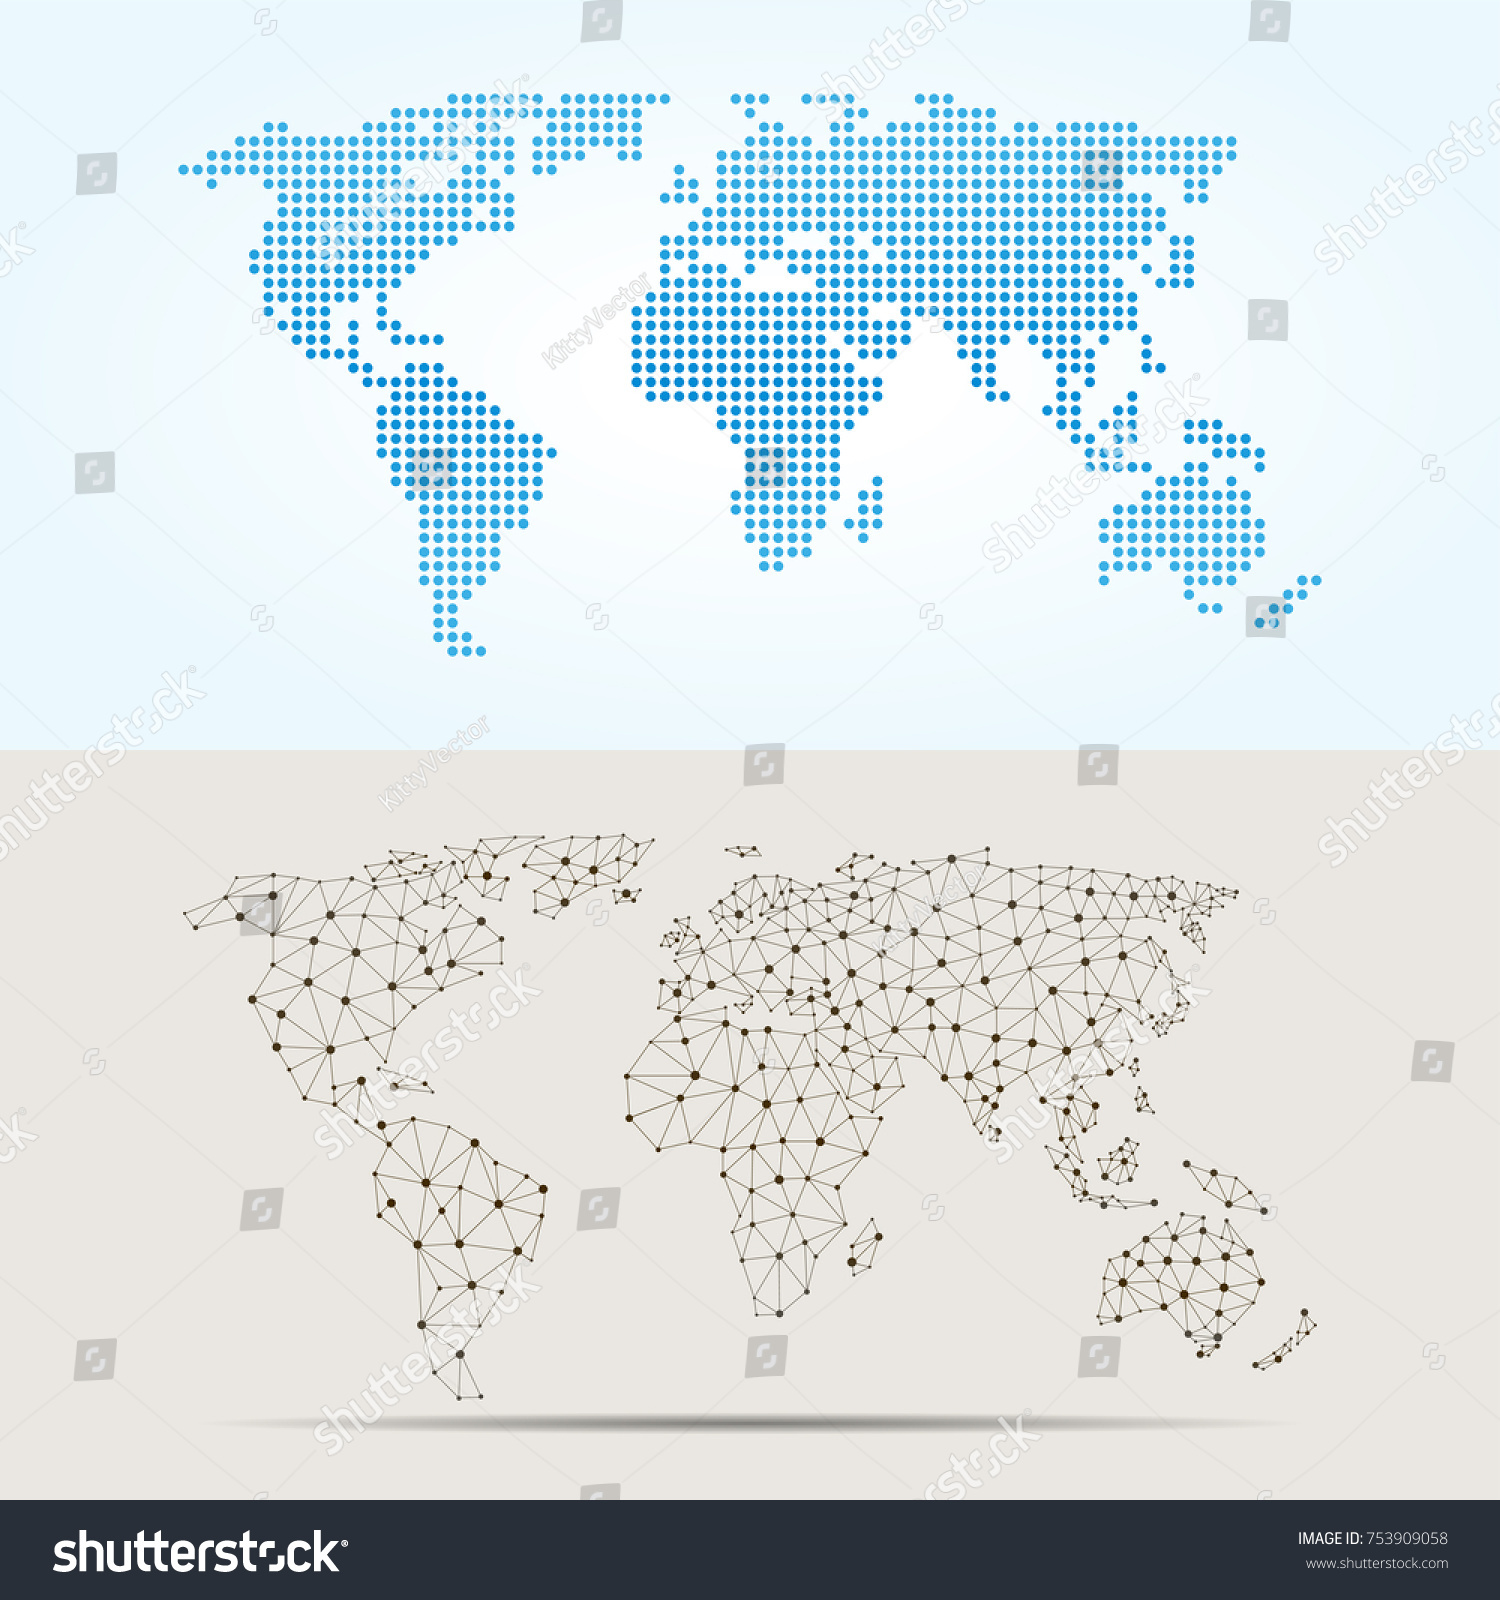 Maps globe earth contour outline silhouette stock vector 753909058 maps globe earth contour outline silhouette world mapping texture vector illustration international art worldwide global gumiabroncs Images